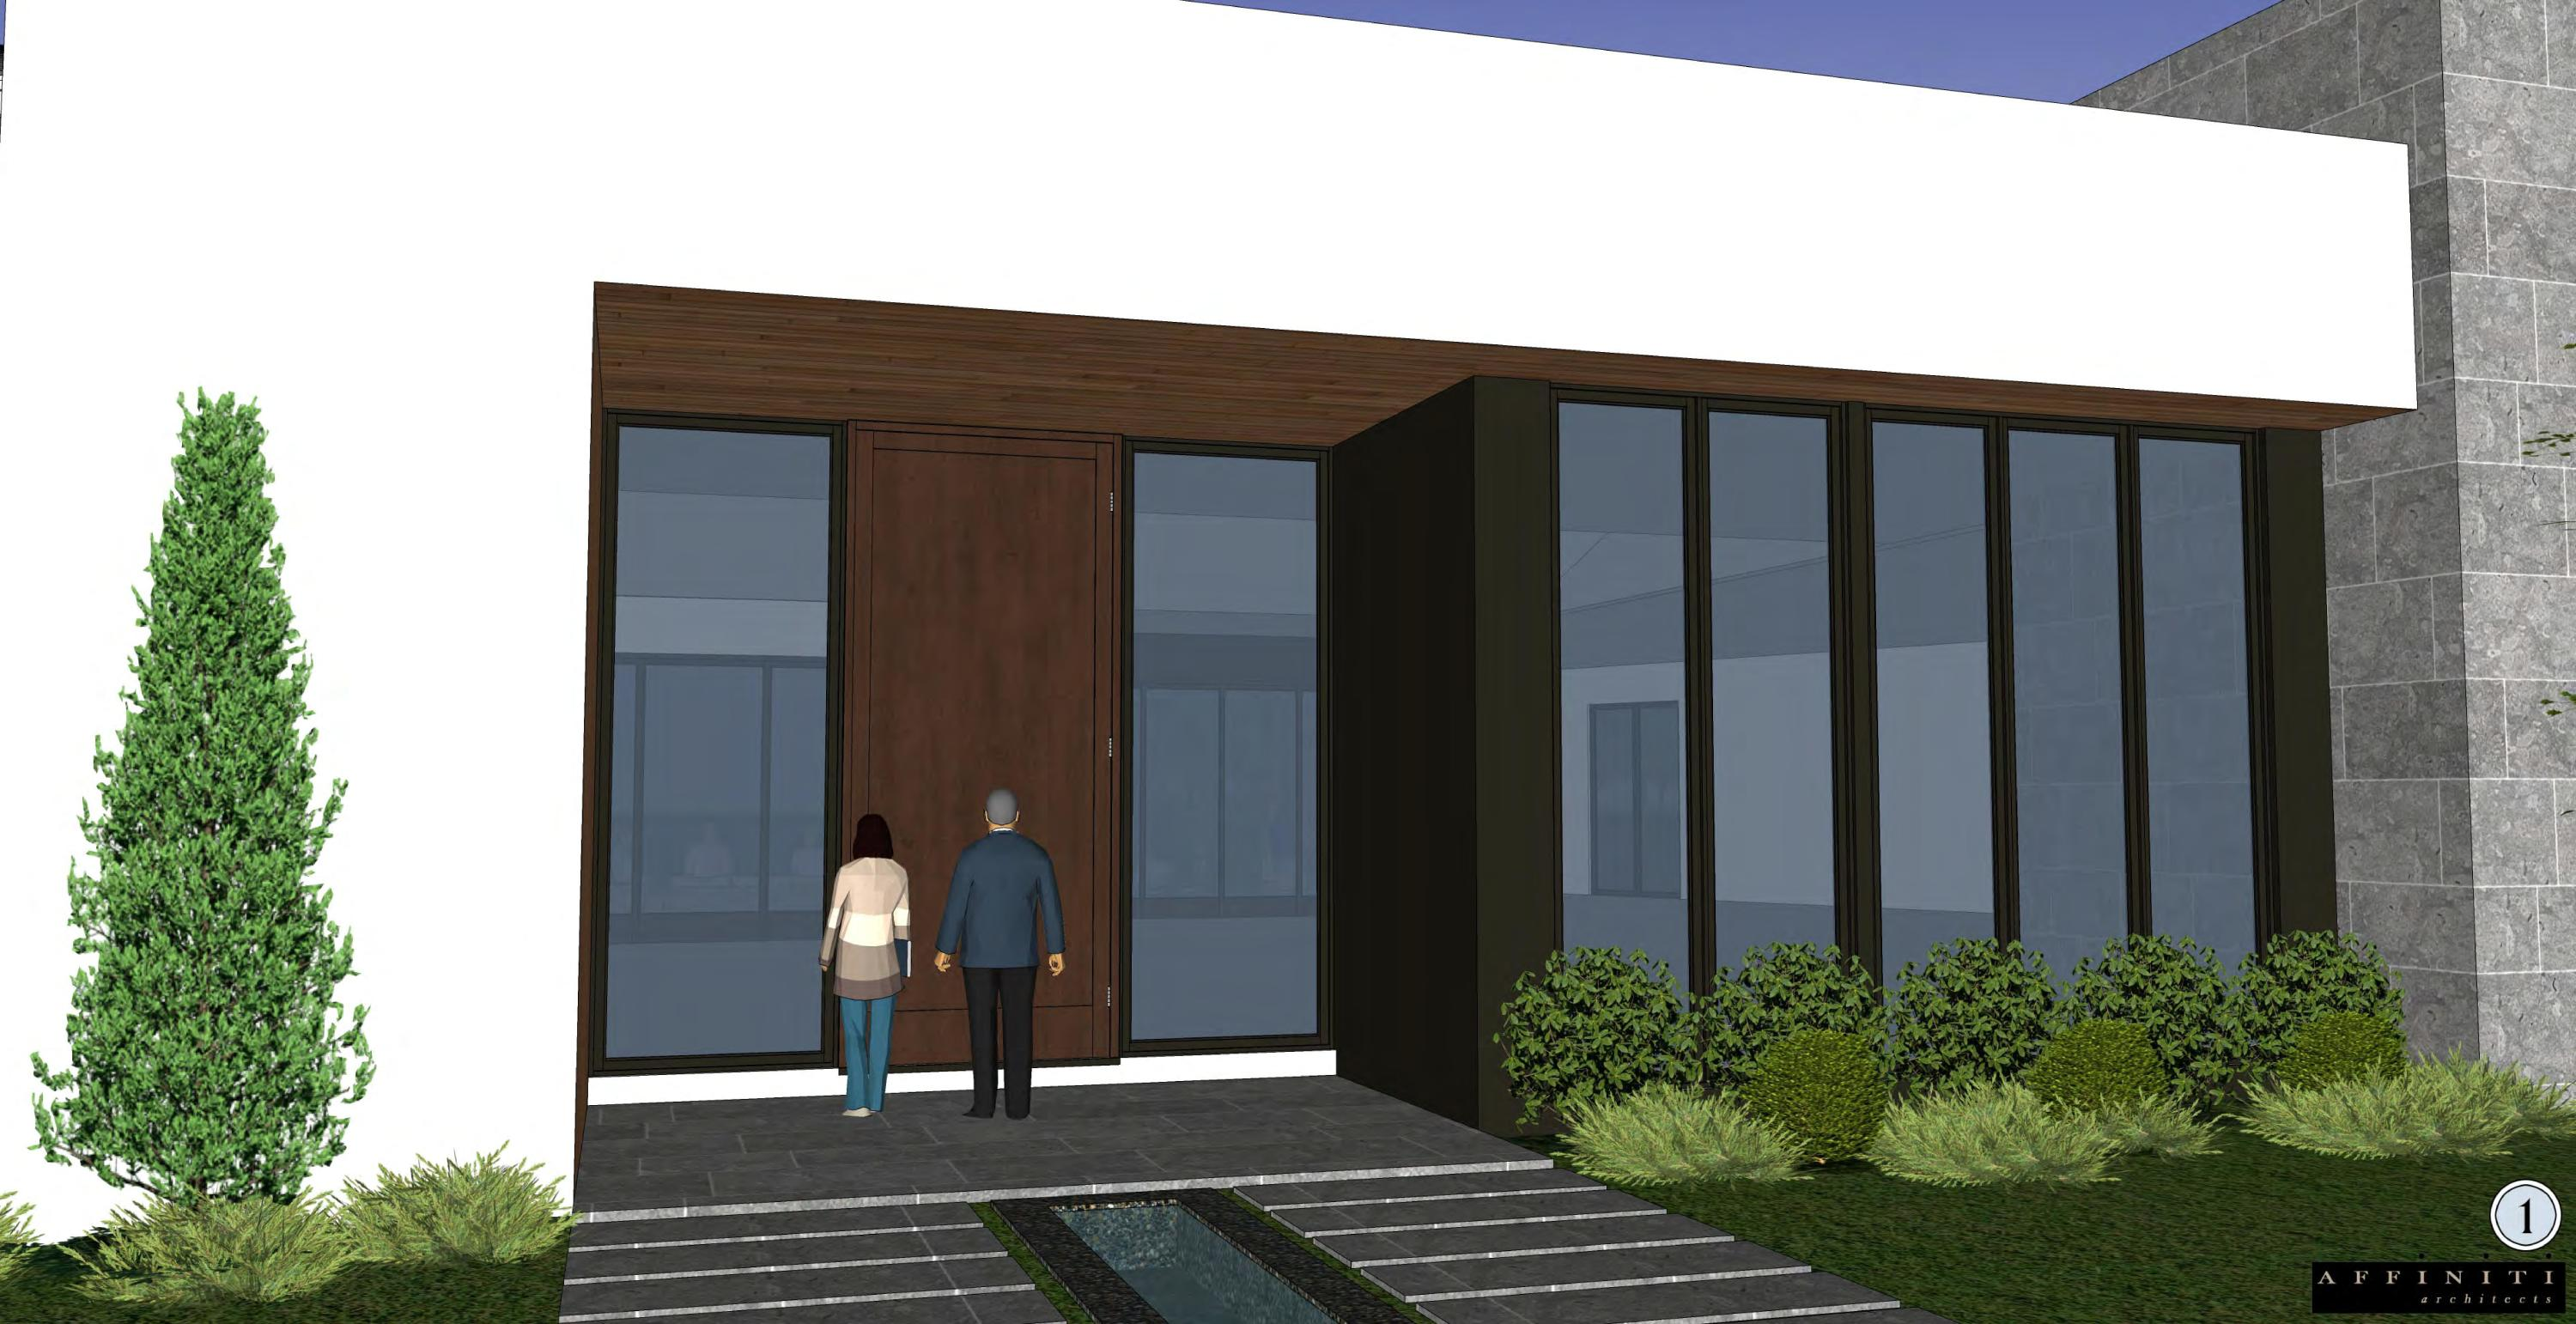 Frenchman's Creek's finest! Extraordinary new construction built by renowned Bloomfield Construction located within the fabulous Frenchman's Creek Beach & Country Club. All new custom construction to be built featuring dynamic contemporary architecture. Master Suite has separate his & her bathrooms & closets, Club Room features include a bar, pool table & sitting area, Separate Wine Room, 4 en-suite bedrooms,16' vaulted ceilings, Gourmet Kitchen, Great room w/ fireplace, Office, 4 car garage with provisions for 4 car-lifts, plus golf cart, 40' x 22' pool with spa & firepit and much more. Too new for images. Photos coming soon. Full details upon request.